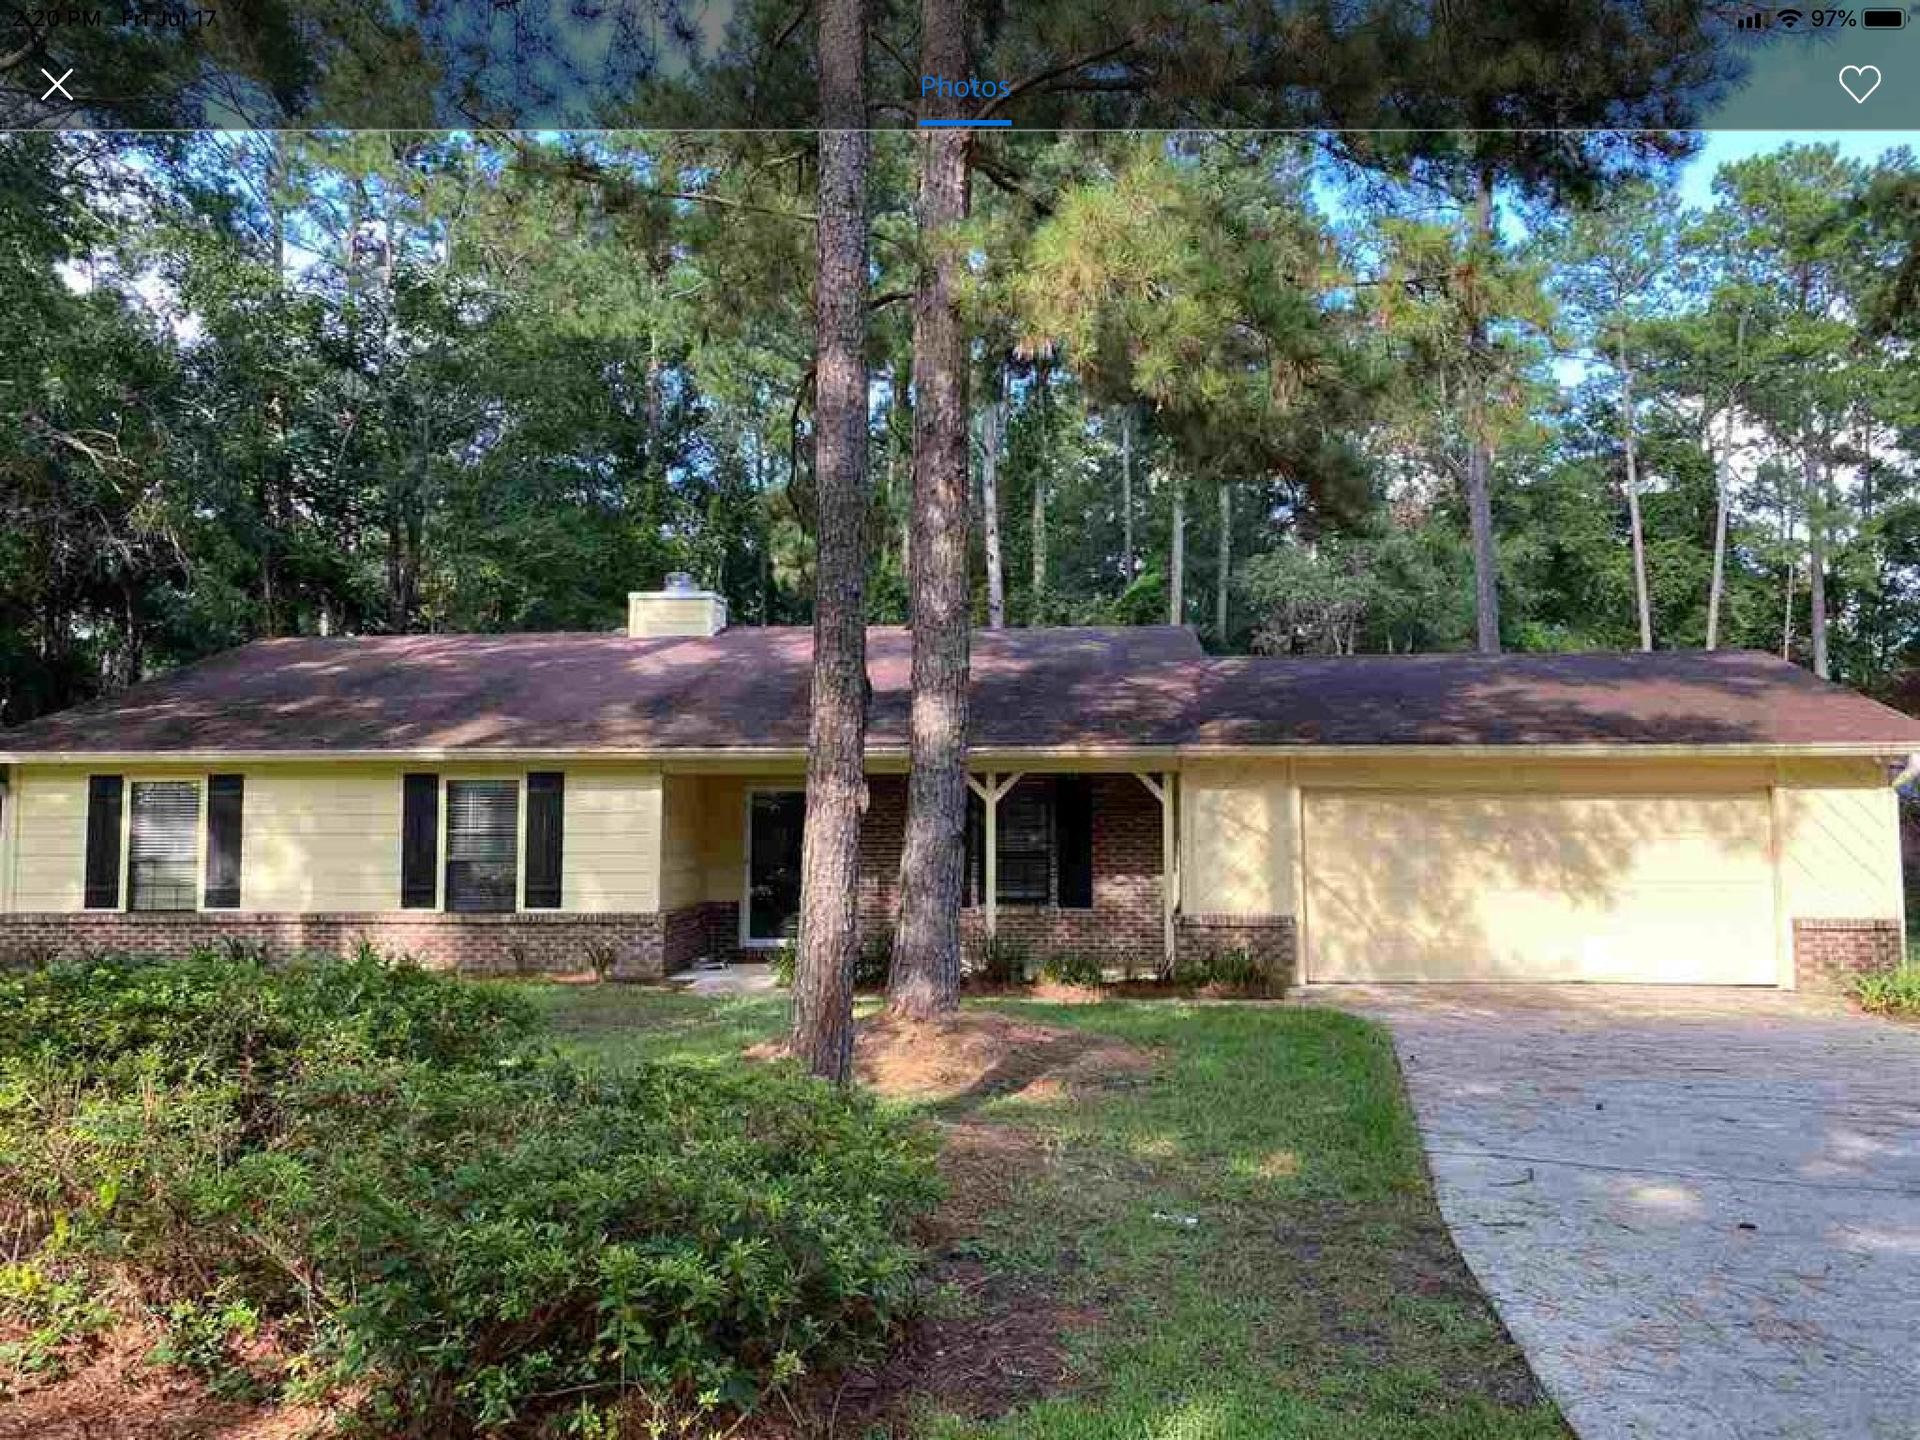 Photo of property: 7968 Briarcreek Rd S, Tallahassee, FL 32312